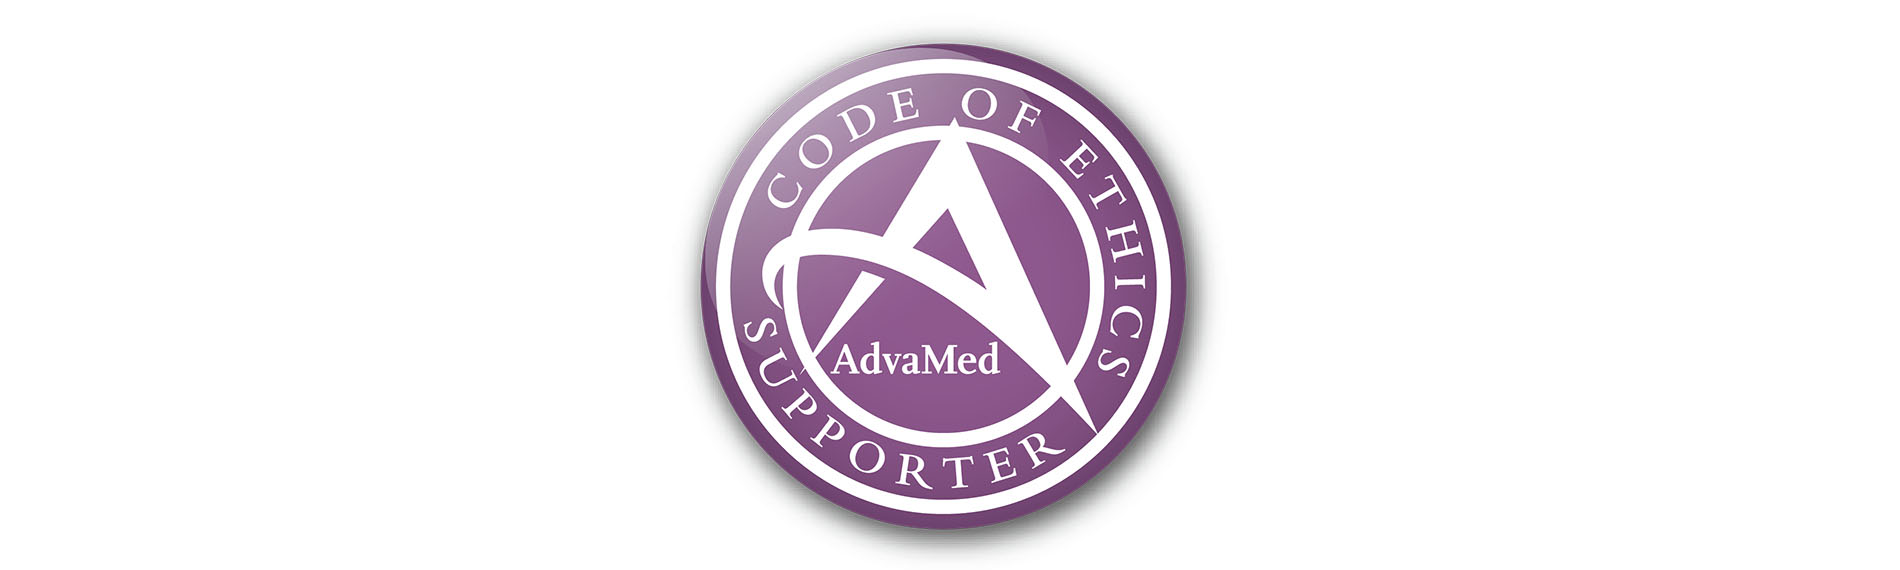 THD America adopts AdvaMed Code of Ethics